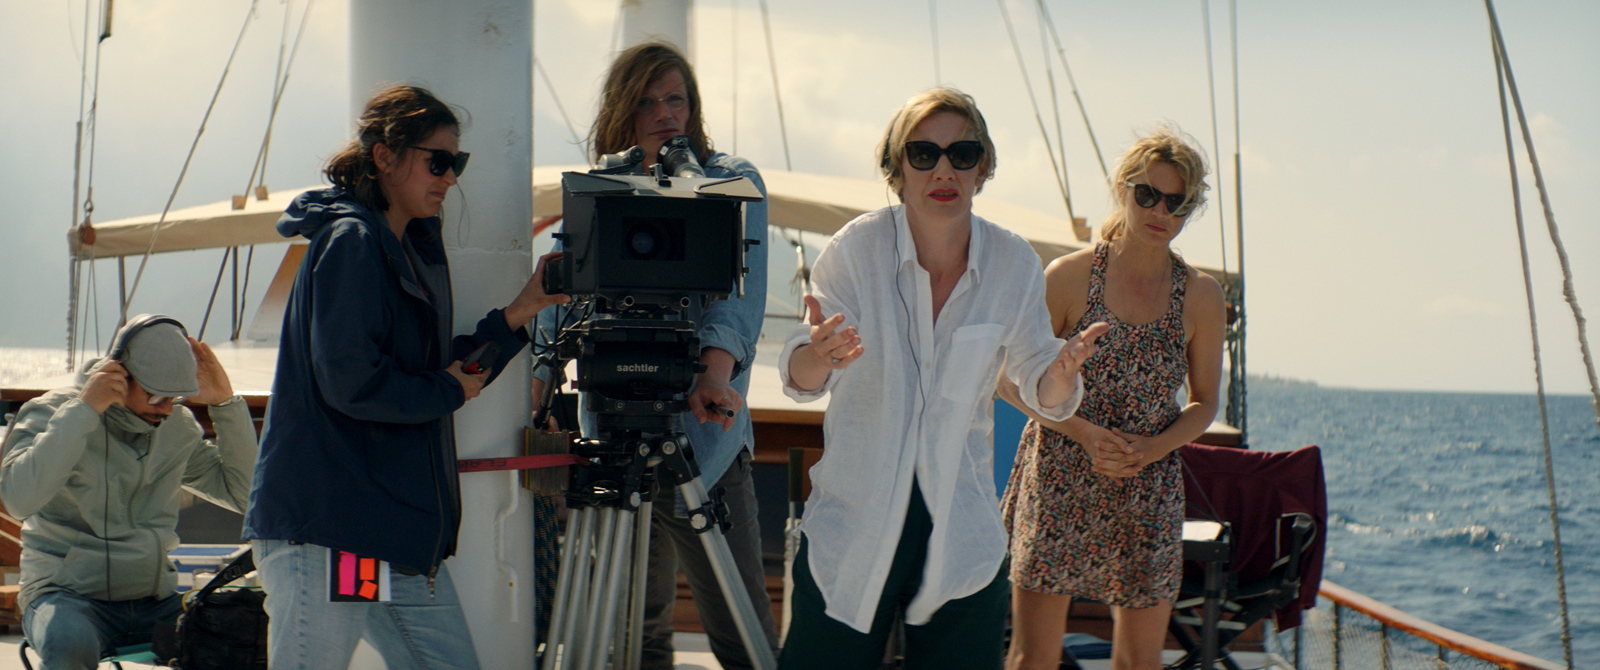 Sandra Hüller and Virginie Efira in Sibyl (2019)